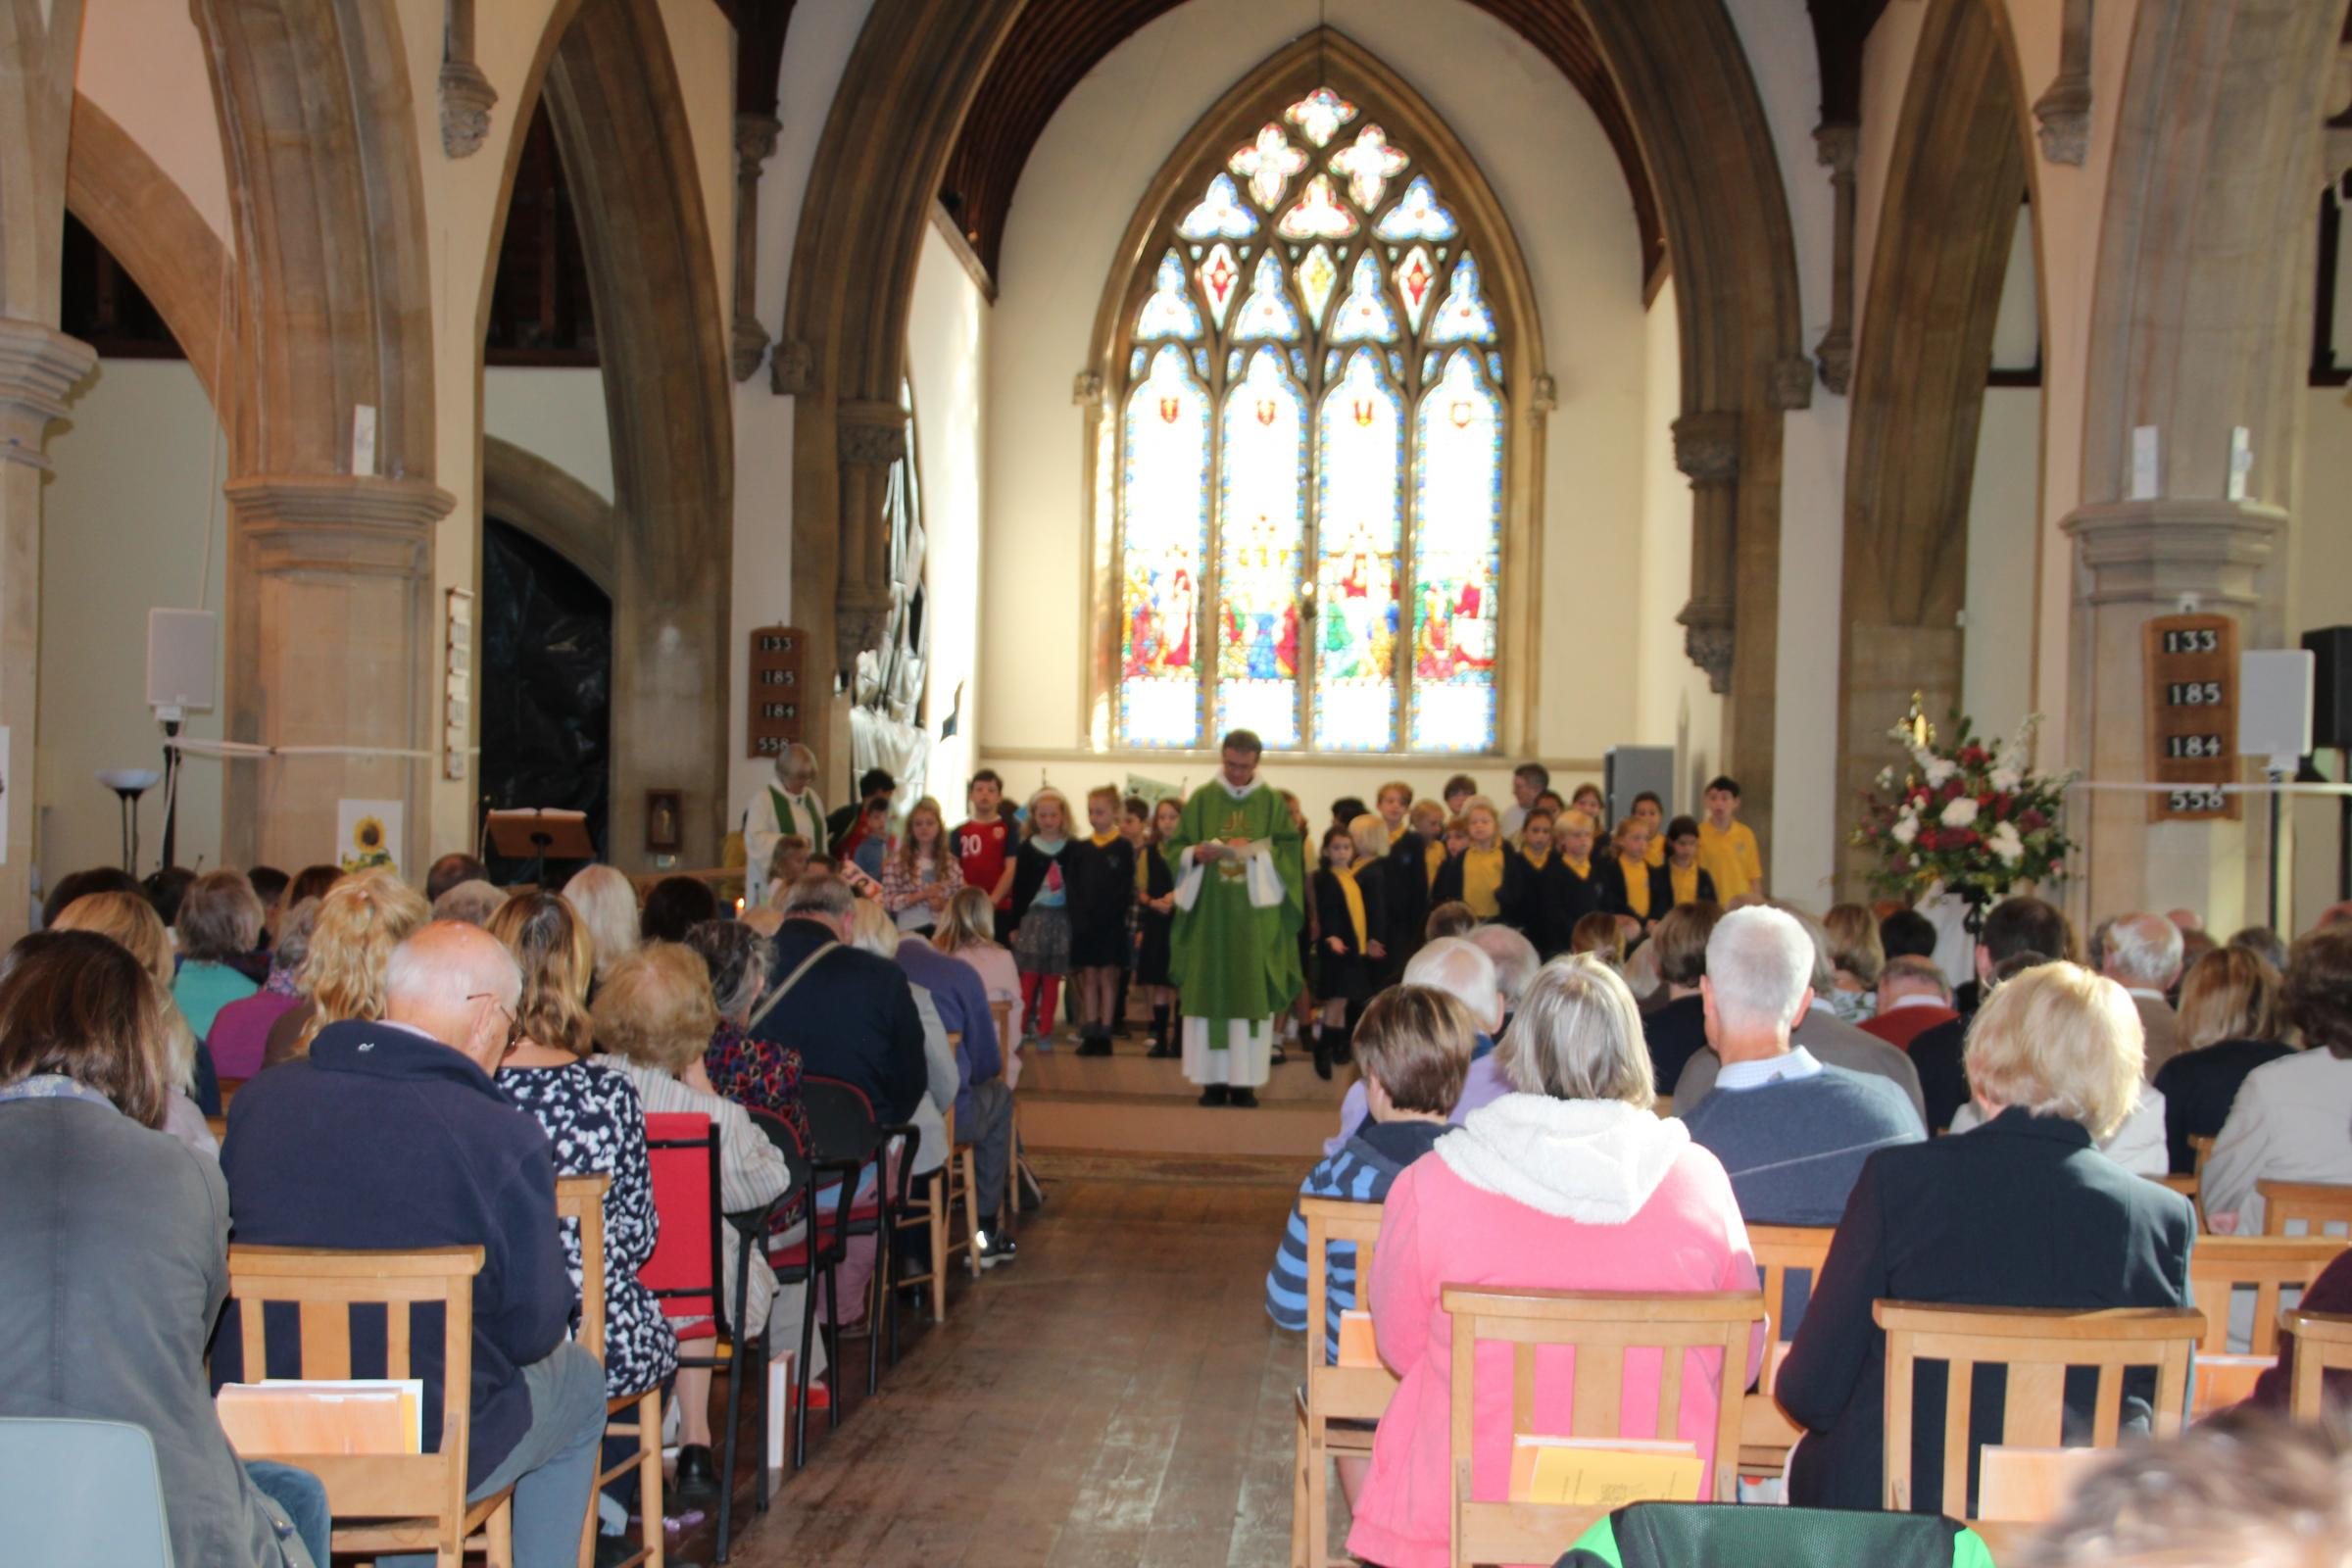 St Paul's Church holds final service ahead of £850,000 transformation project